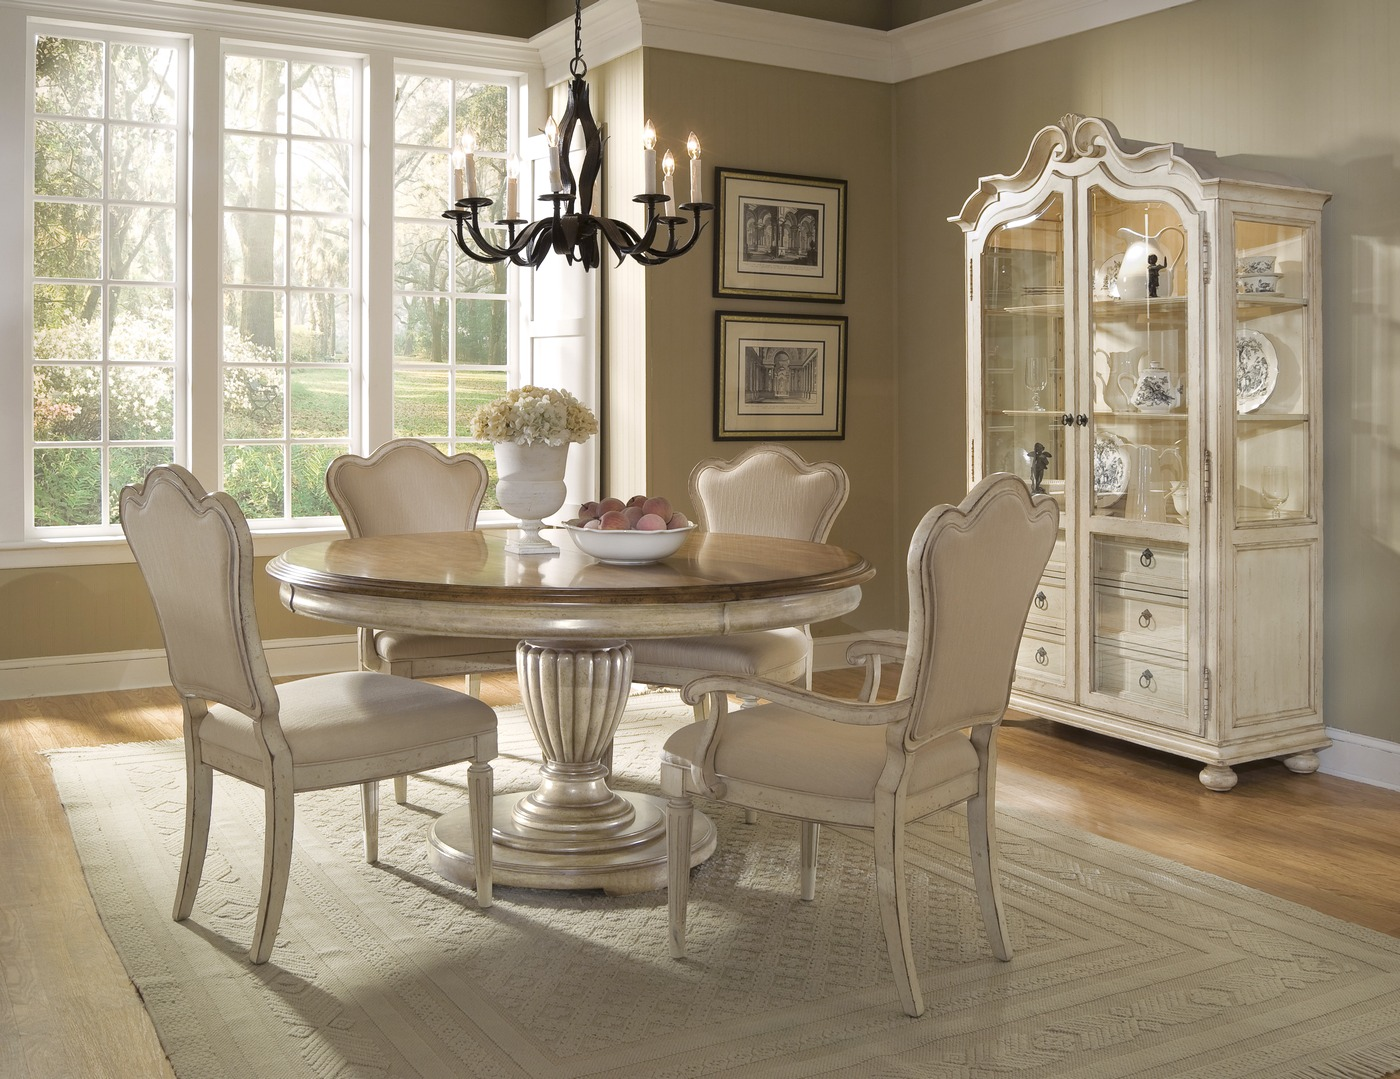 french country whitewash round oval table chairs dining room set